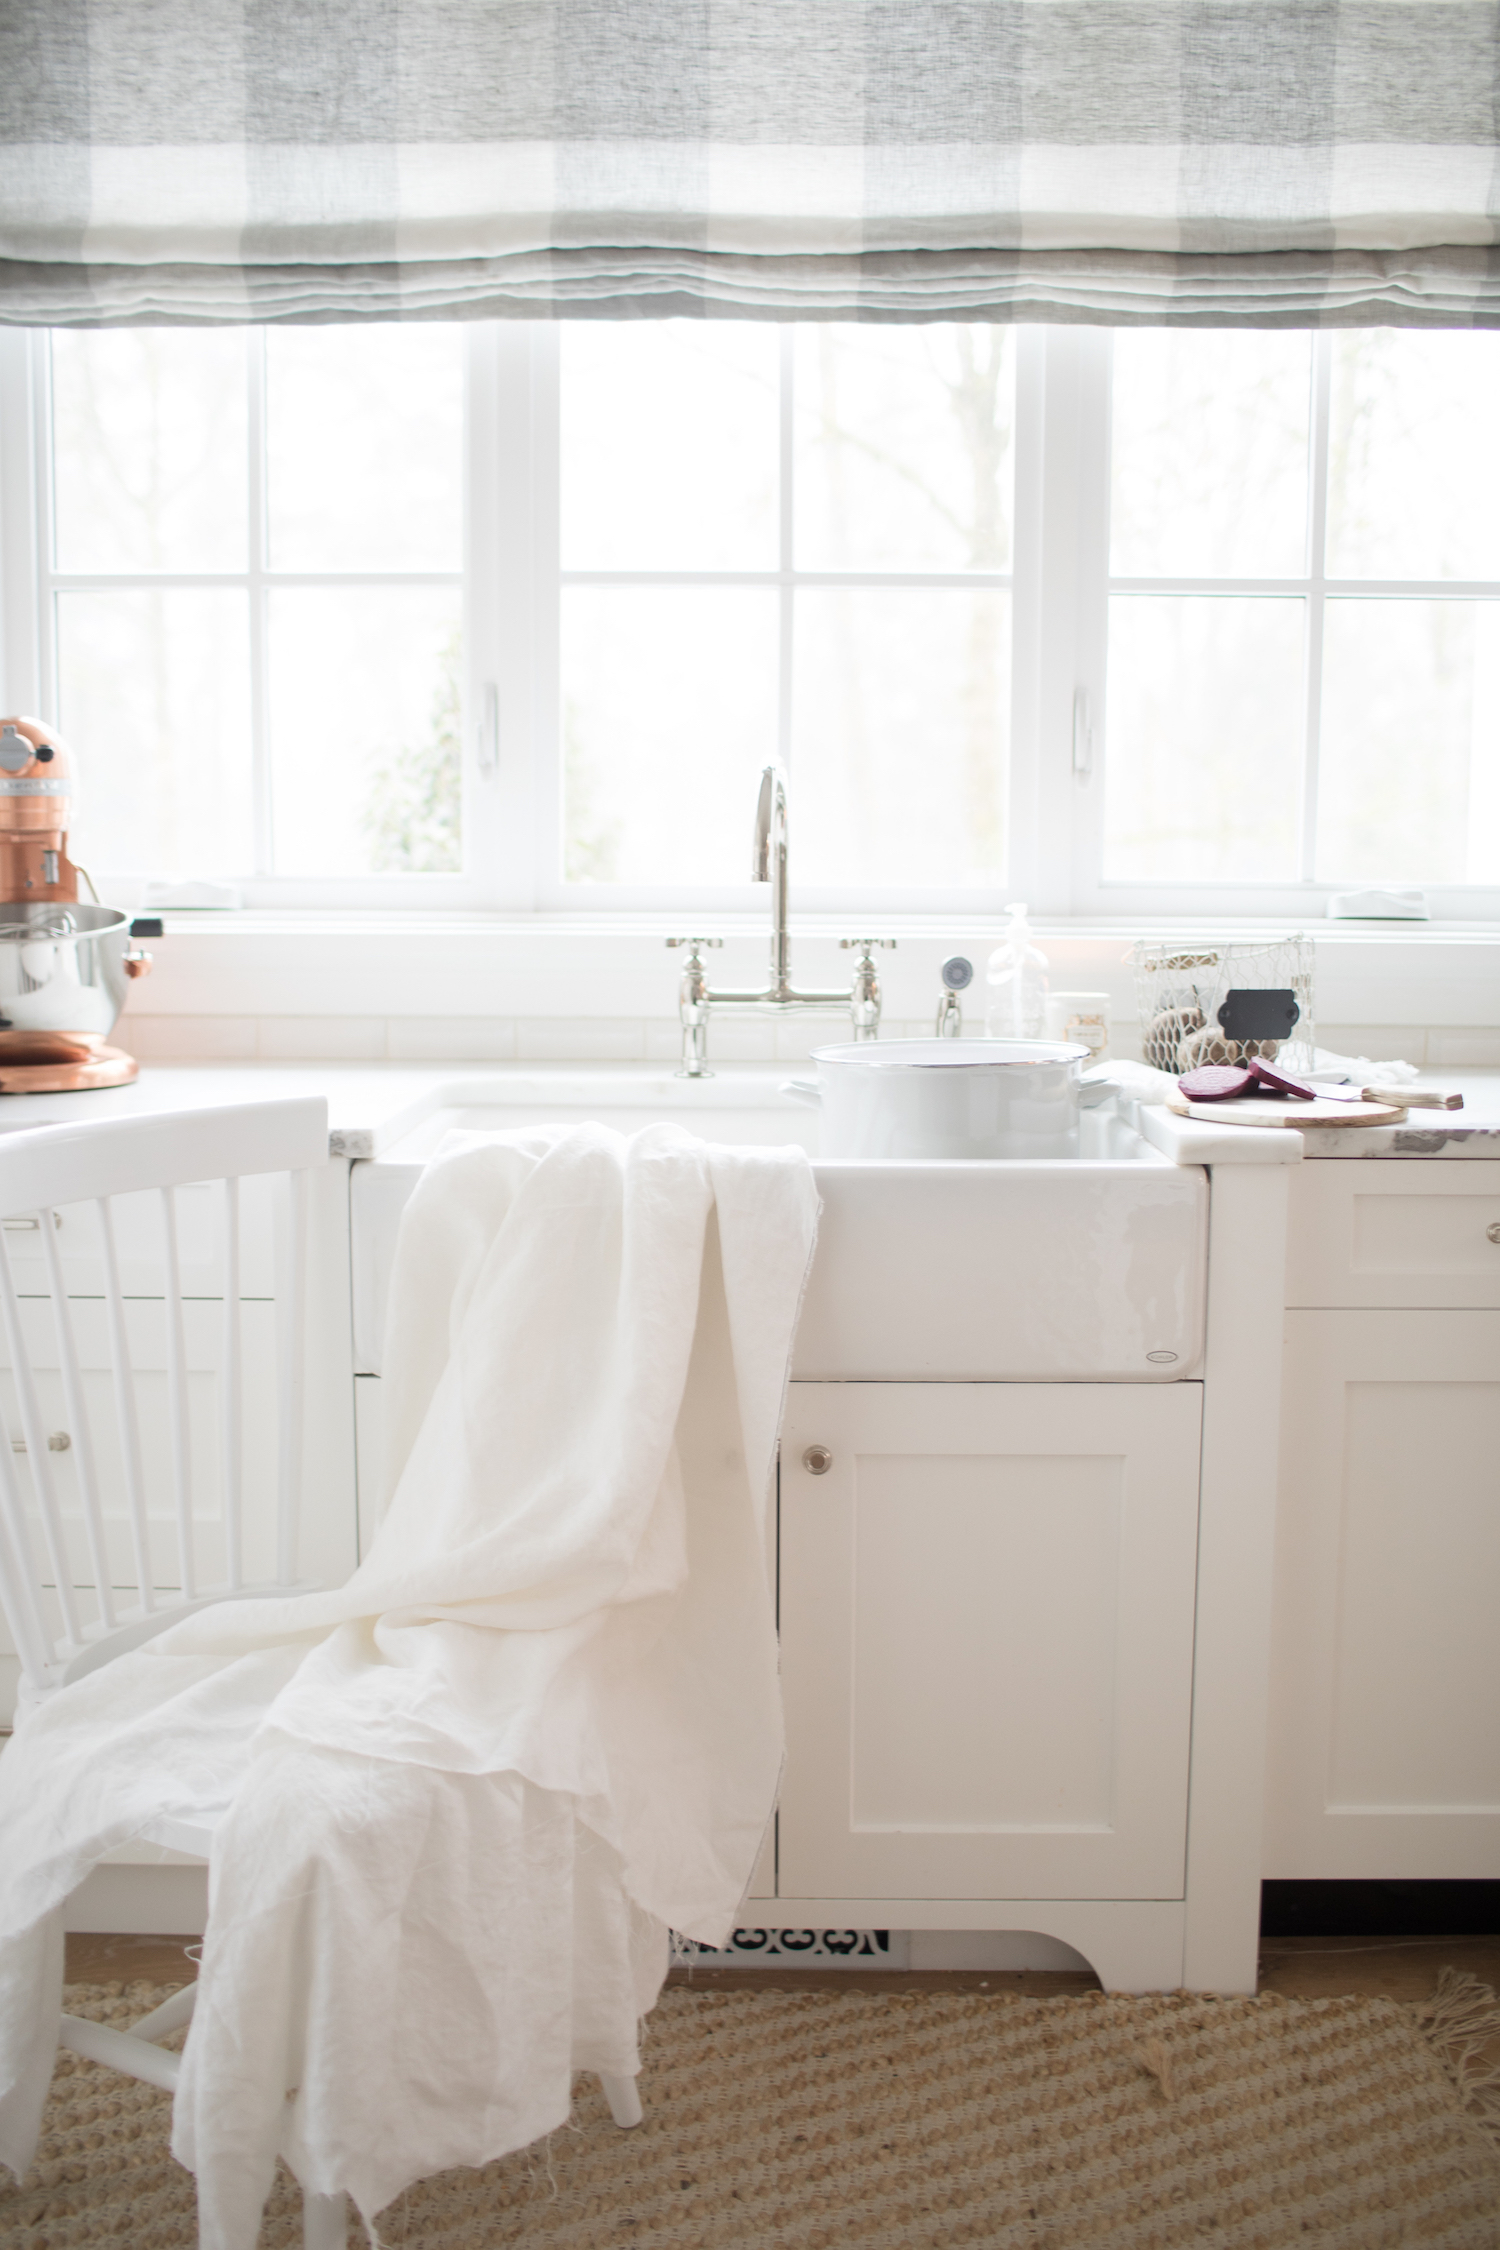 Dying white linens with beets